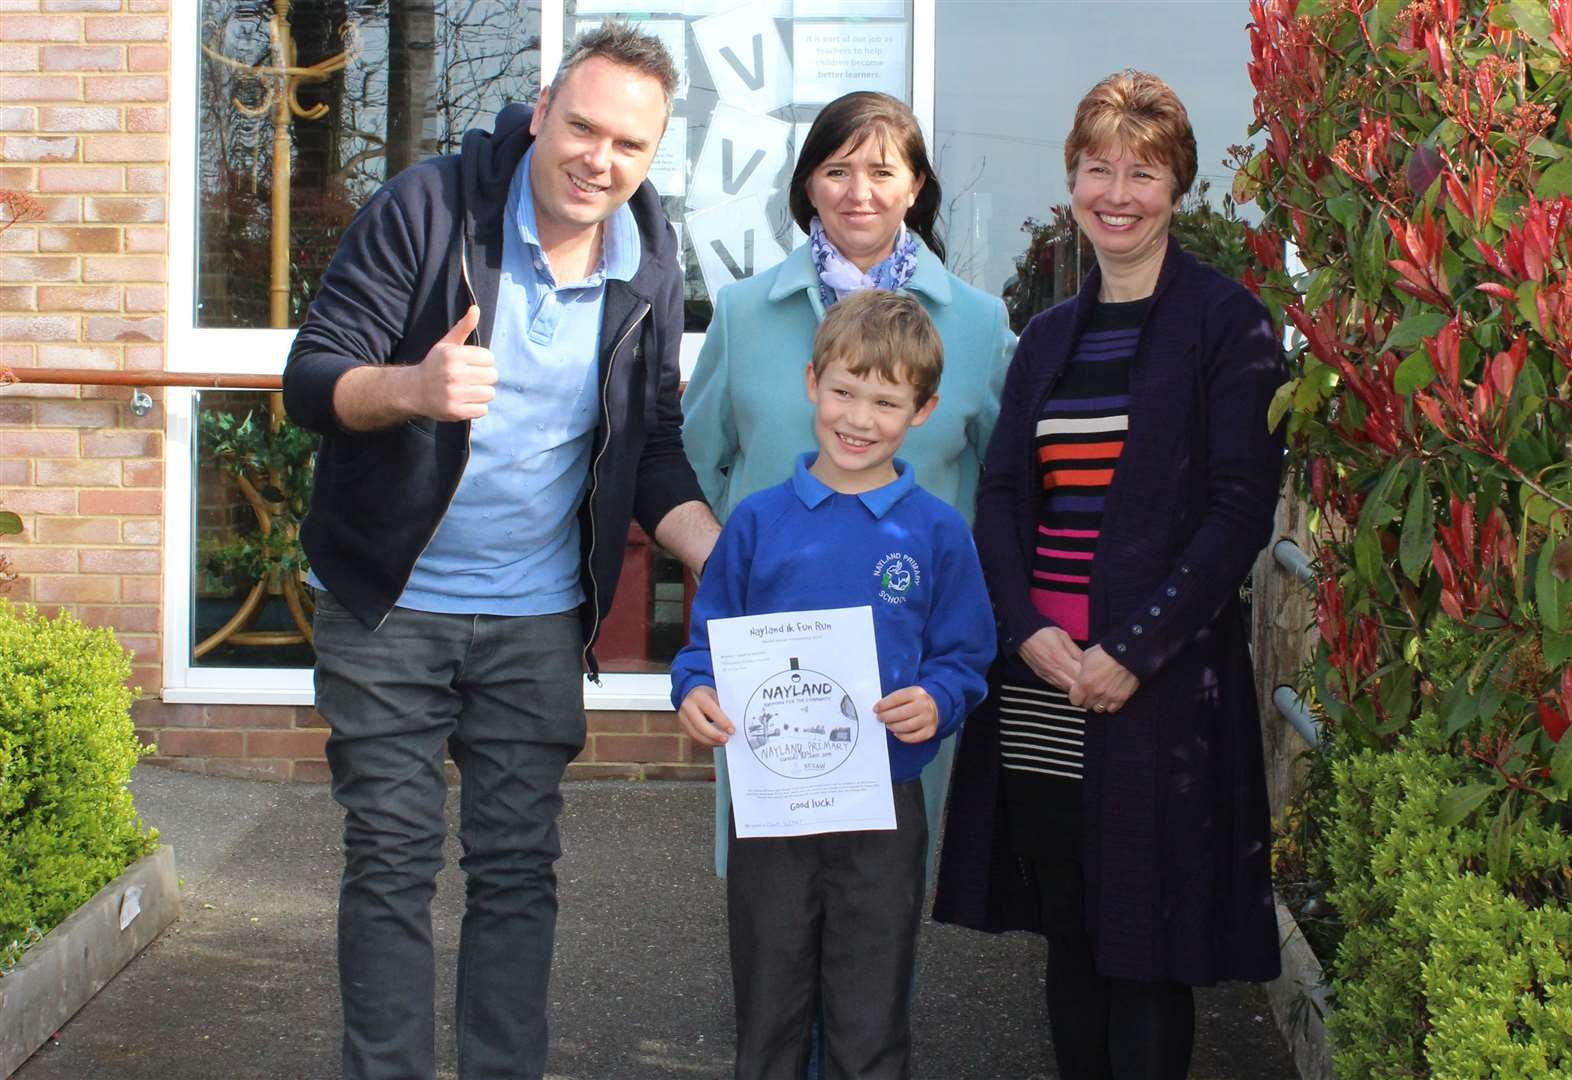 Nayland school pupil wins medal design competition for charity Fun Run